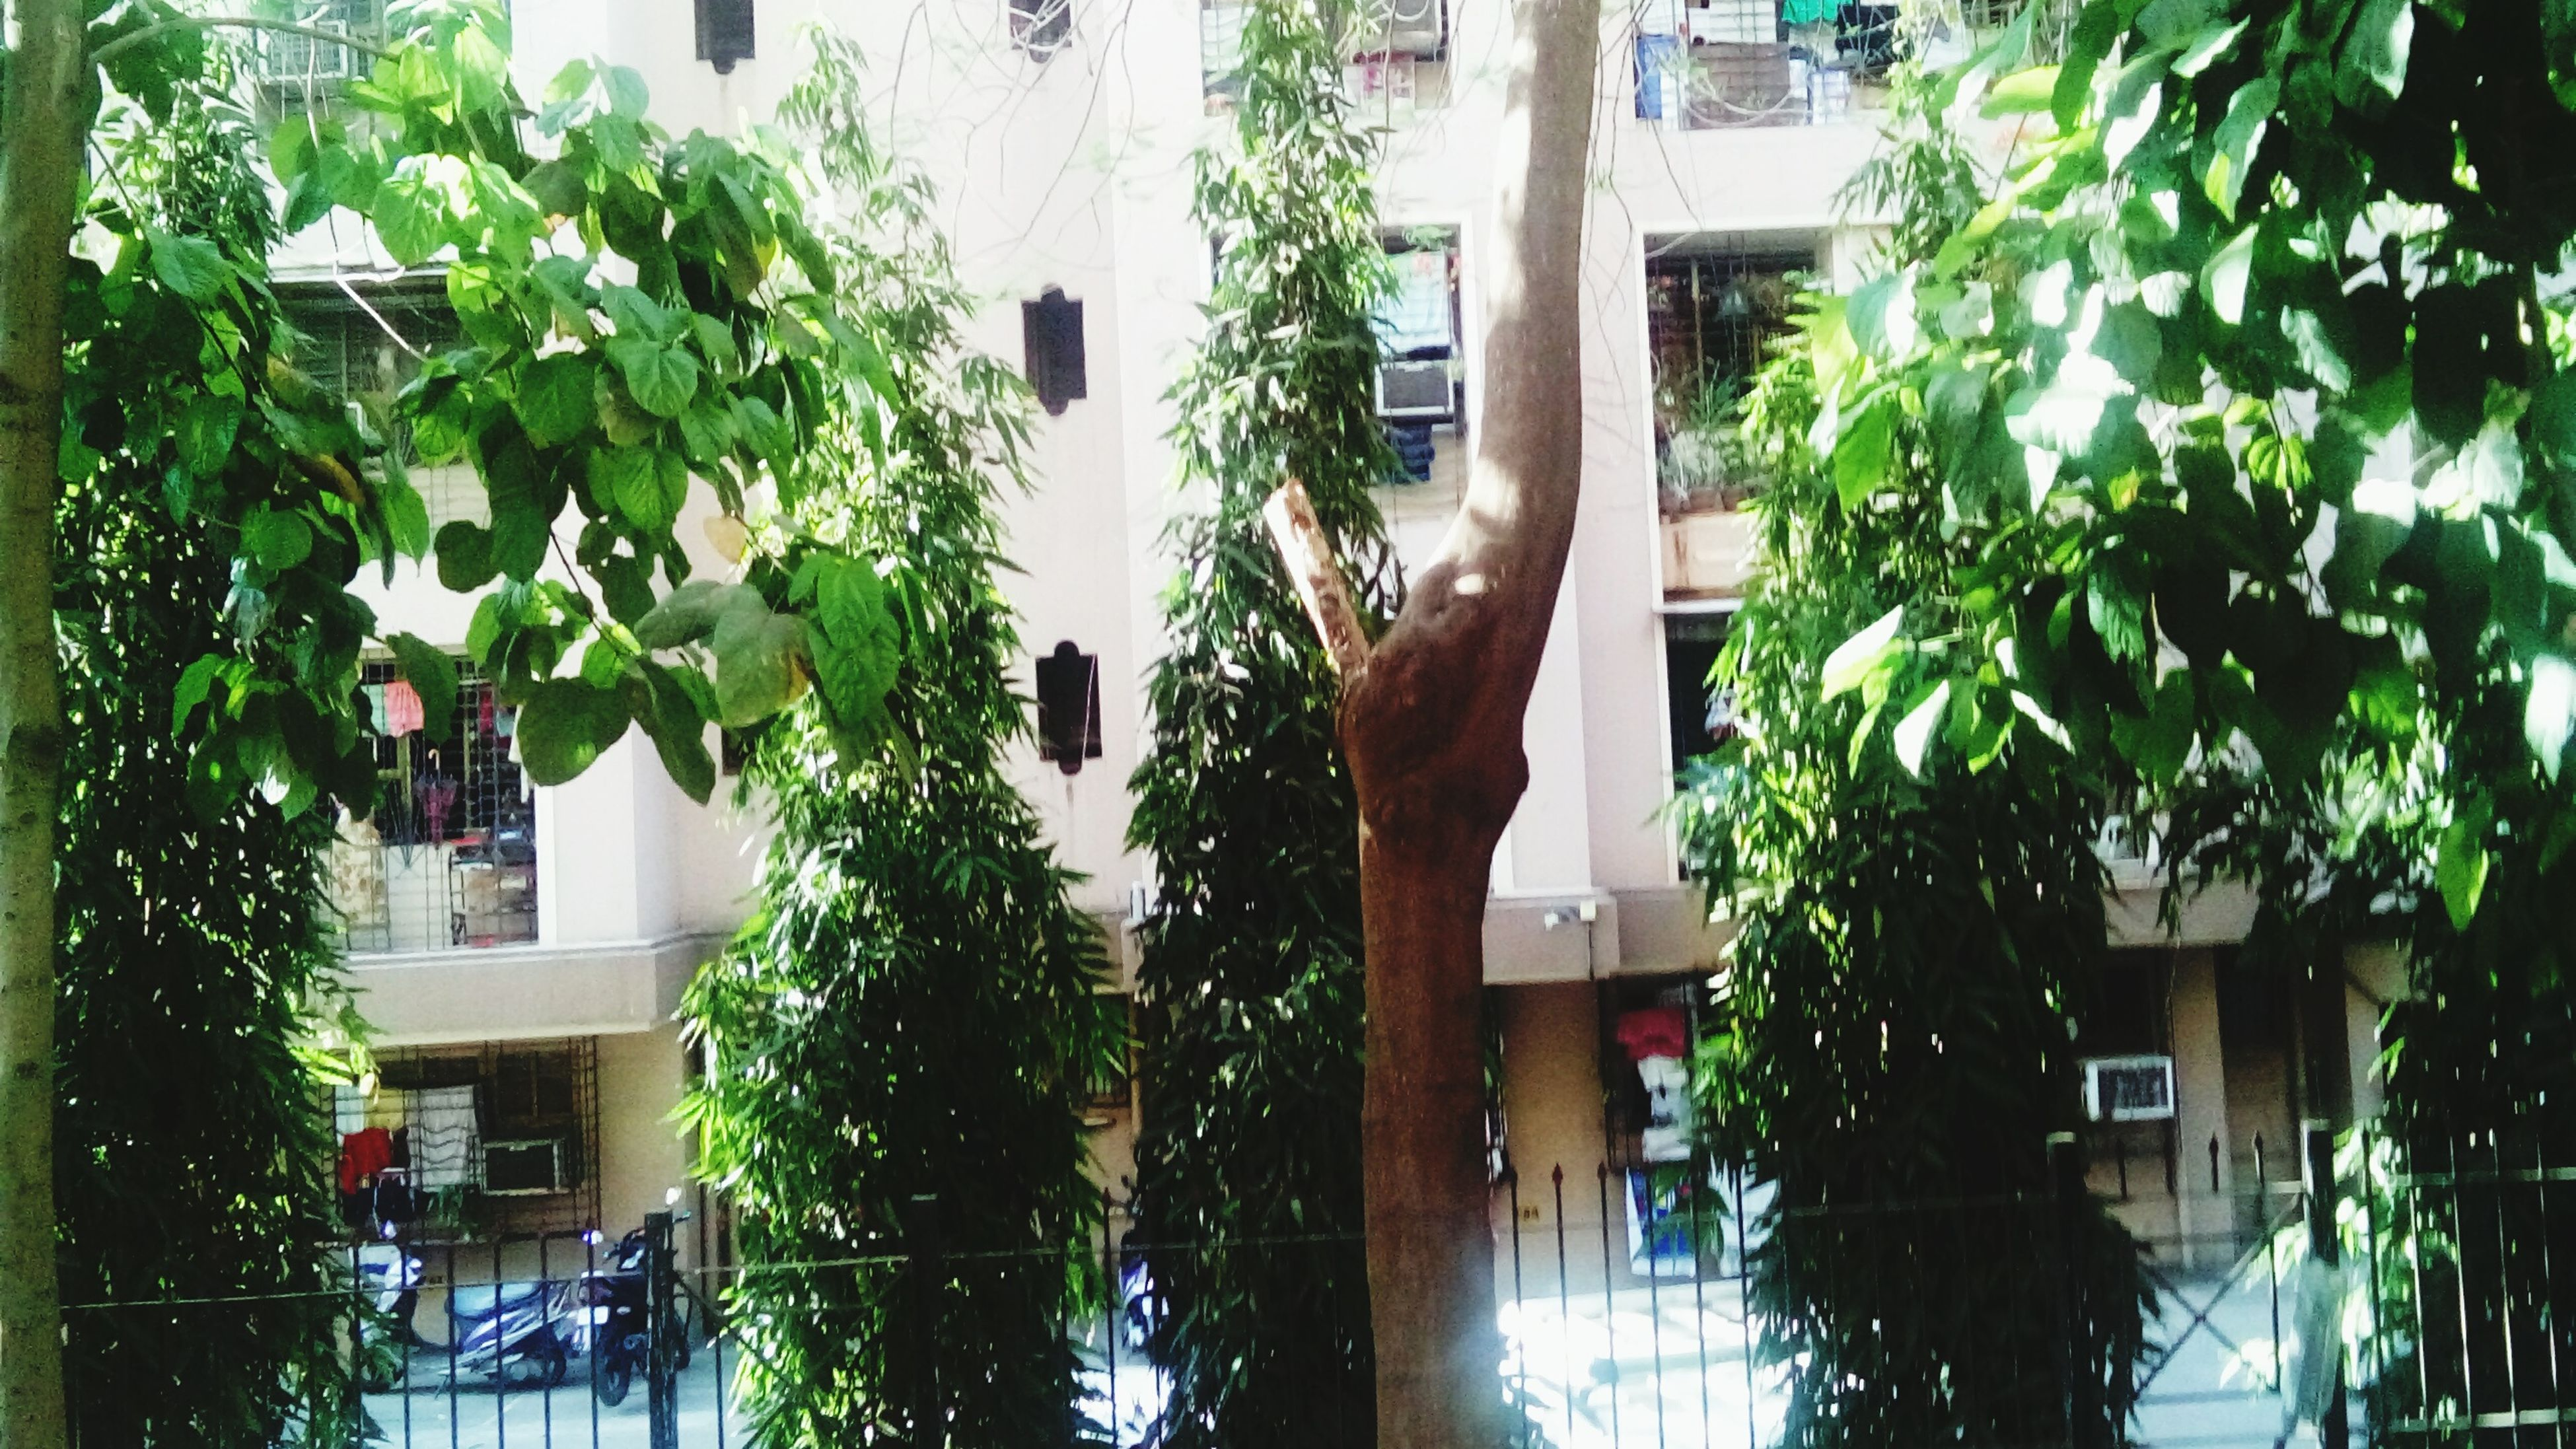 building exterior, architecture, built structure, tree, growth, house, window, residential building, residential structure, branch, low angle view, plant, balcony, building, leaf, potted plant, nature, day, no people, outdoors